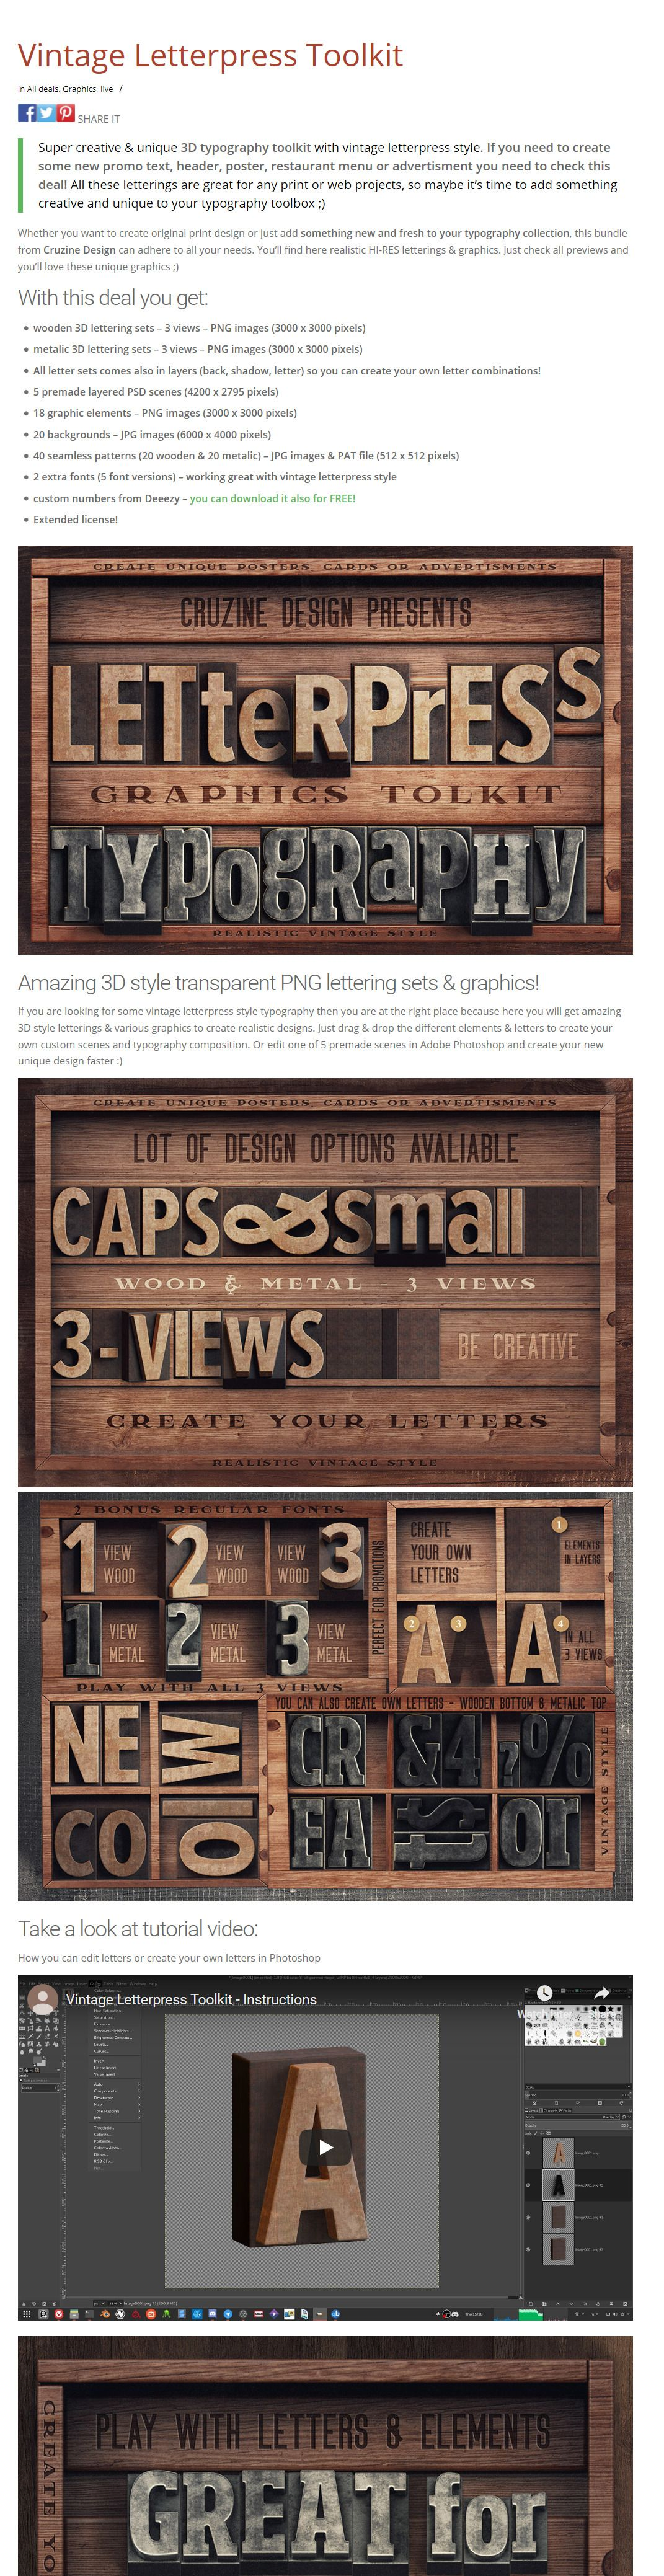 #New ✨ Vintage Letterpress Toolkit #3dtypography